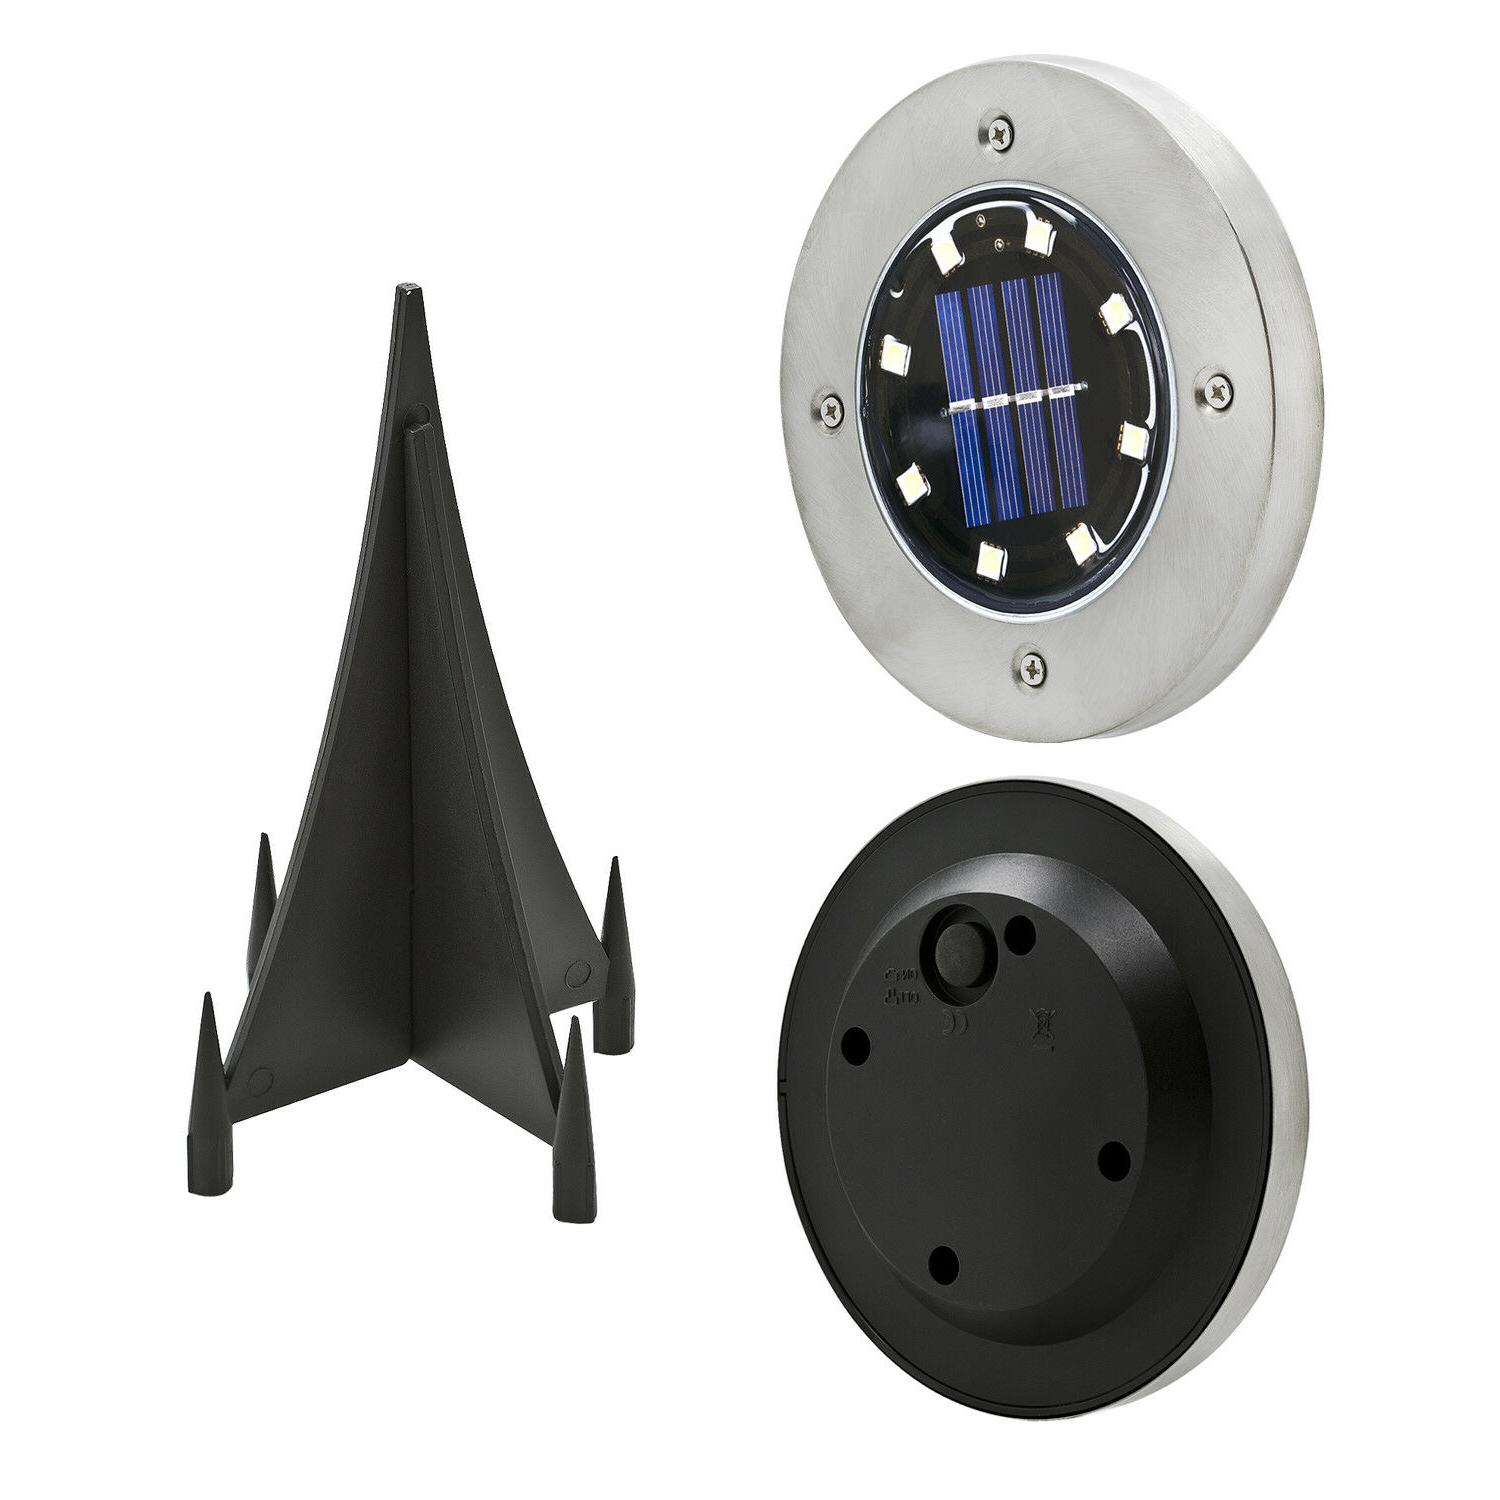 Ground Solar Lights Outdoor In-Ground